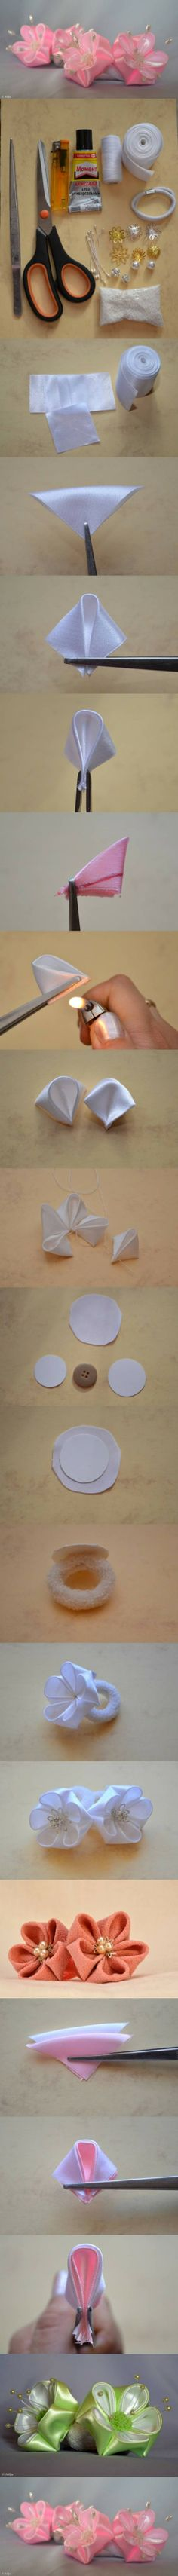 How to make beautiful Flowers of ribbon bow step by step DIY tutorial instructions 512x7417 How to make beautiful Flowers of ribbon bow step...